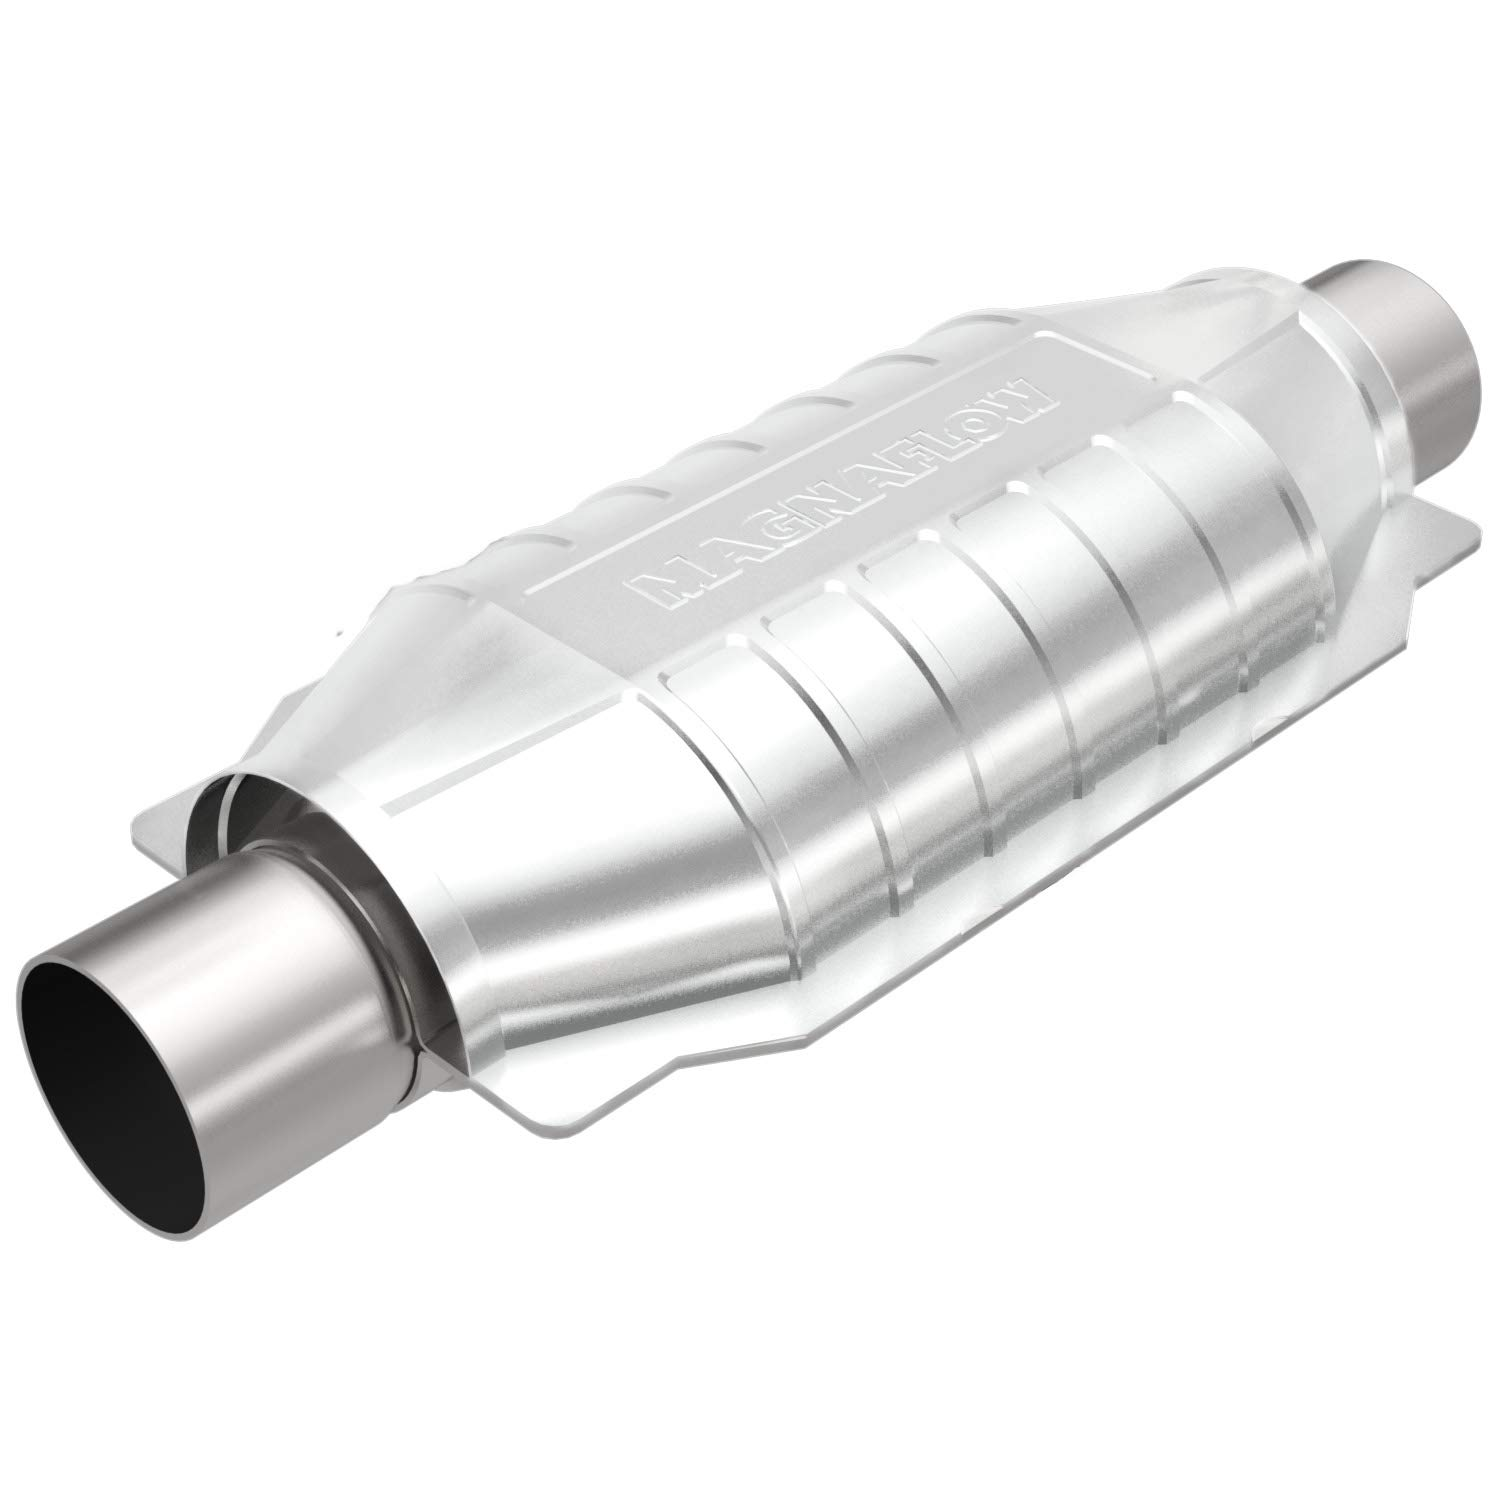 MagnaFlow 94006 Universal Catalytic Converter (Non CARB Compliant) MagnaFlow Exhaust Products